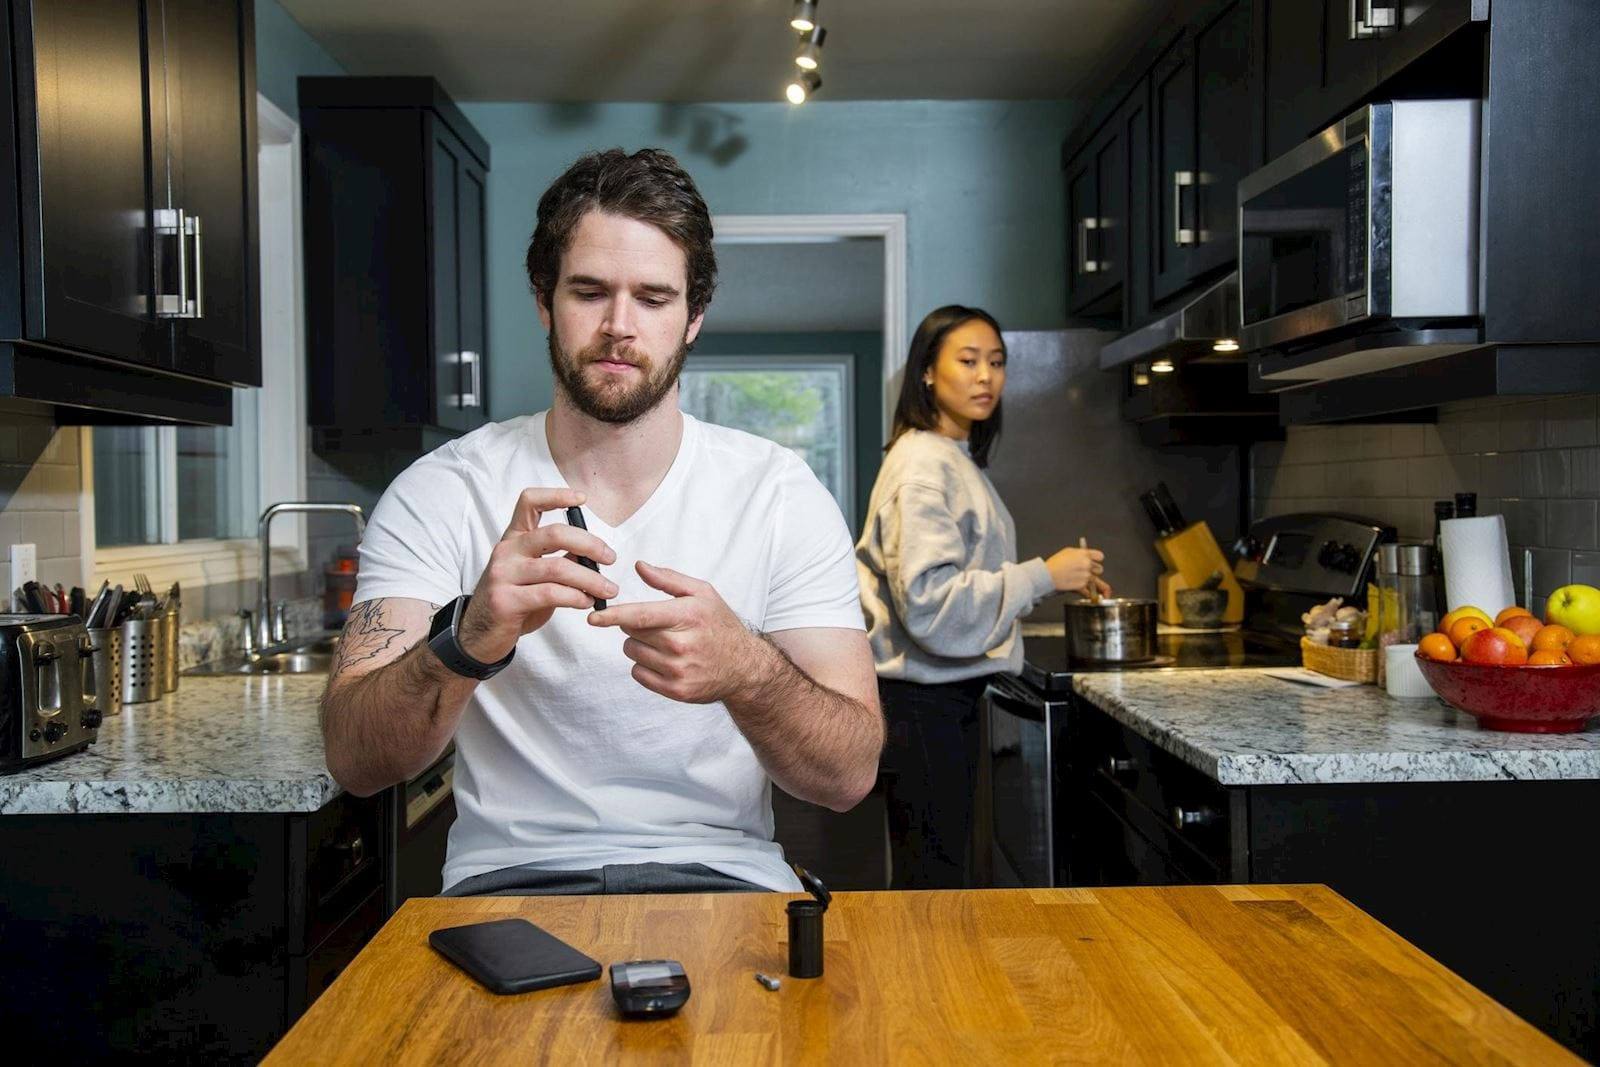 Man with diabetes checks his blood sugar with a finger prick while sitting in his kitchen